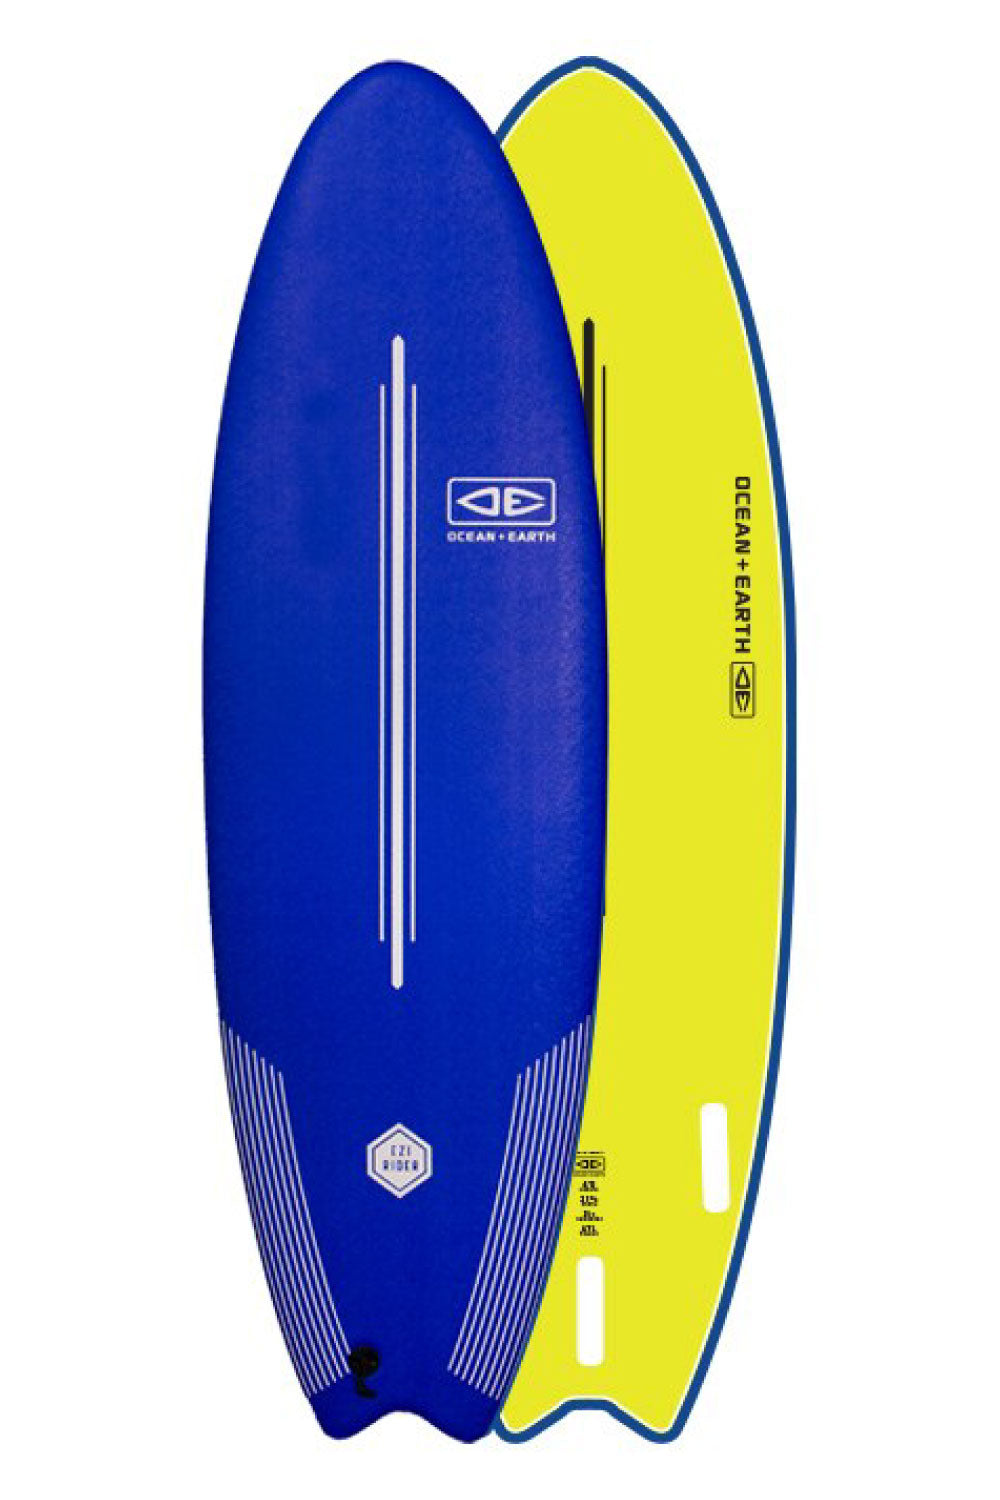 6ft Ocean & Earth Ezi-Rider Navy Softboard